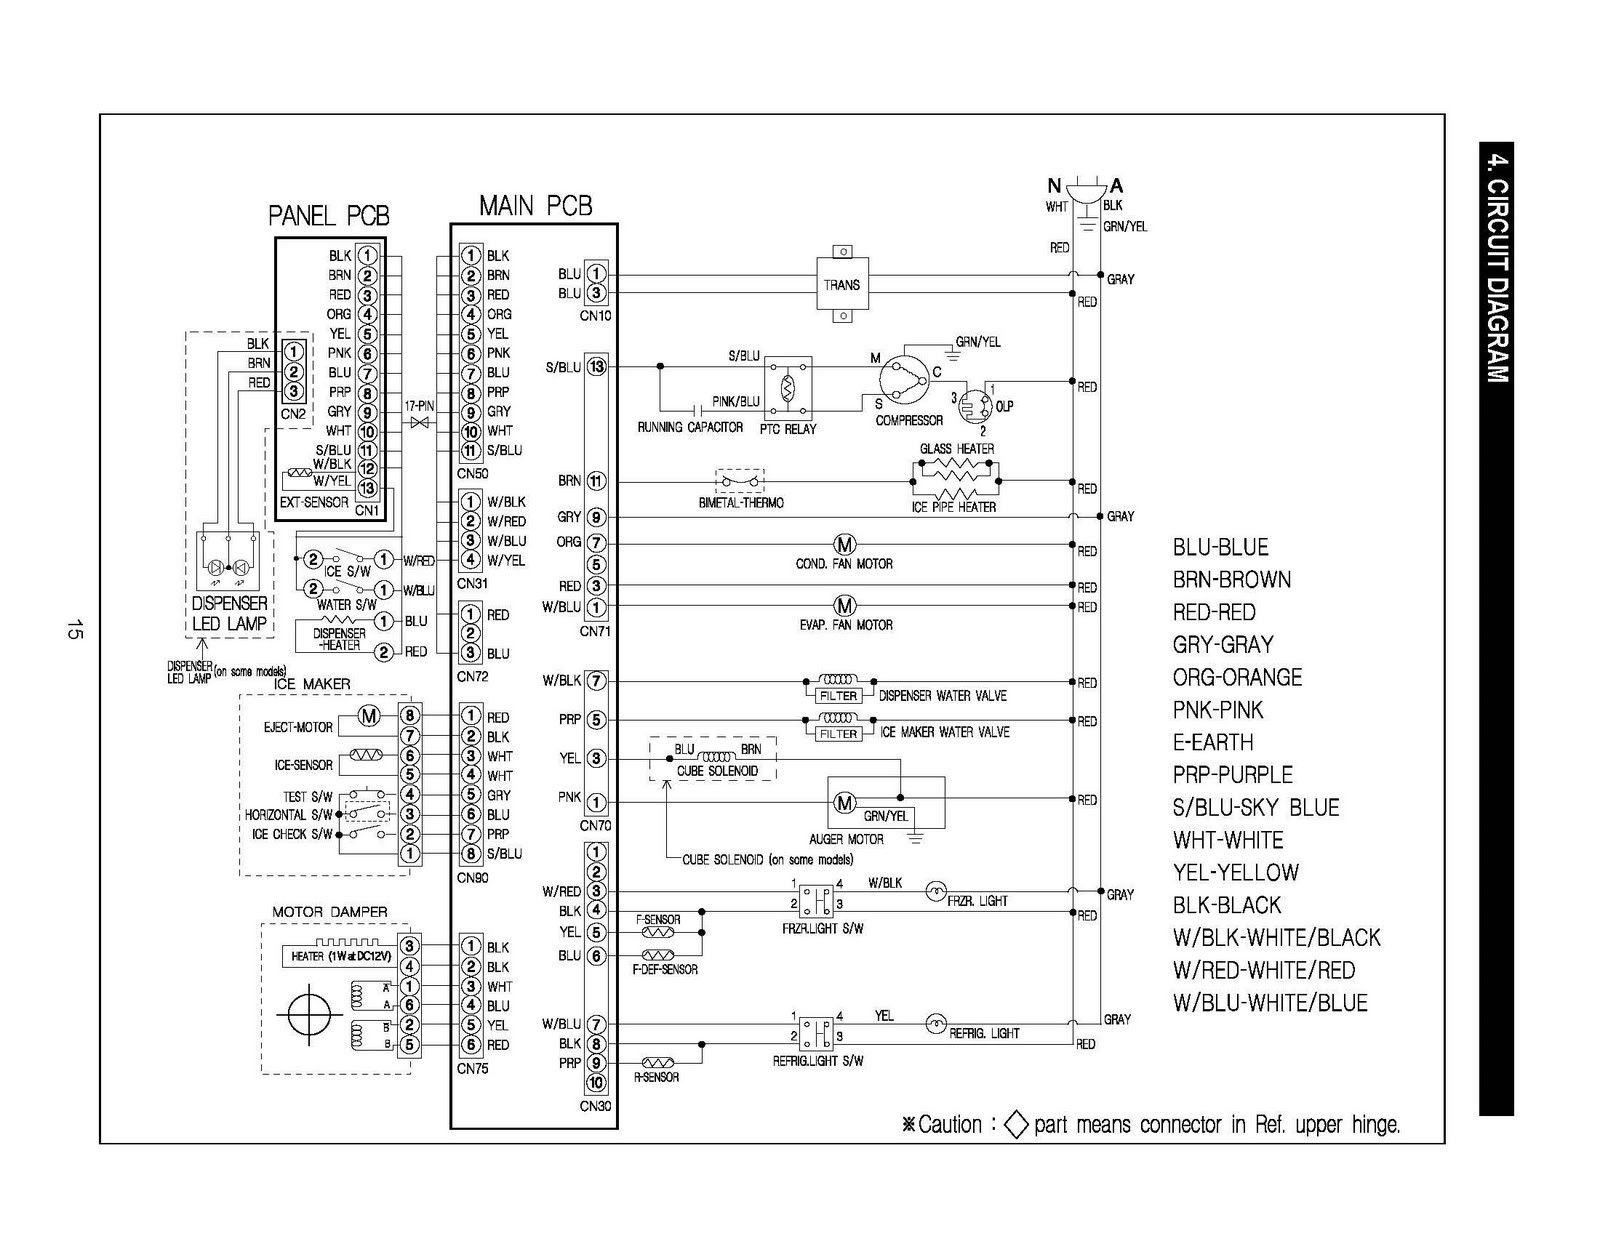 medium resolution of ge refrigerator wiring diagram best of ge monogram wiring diagramge refrigerator wiring diagram best of ge